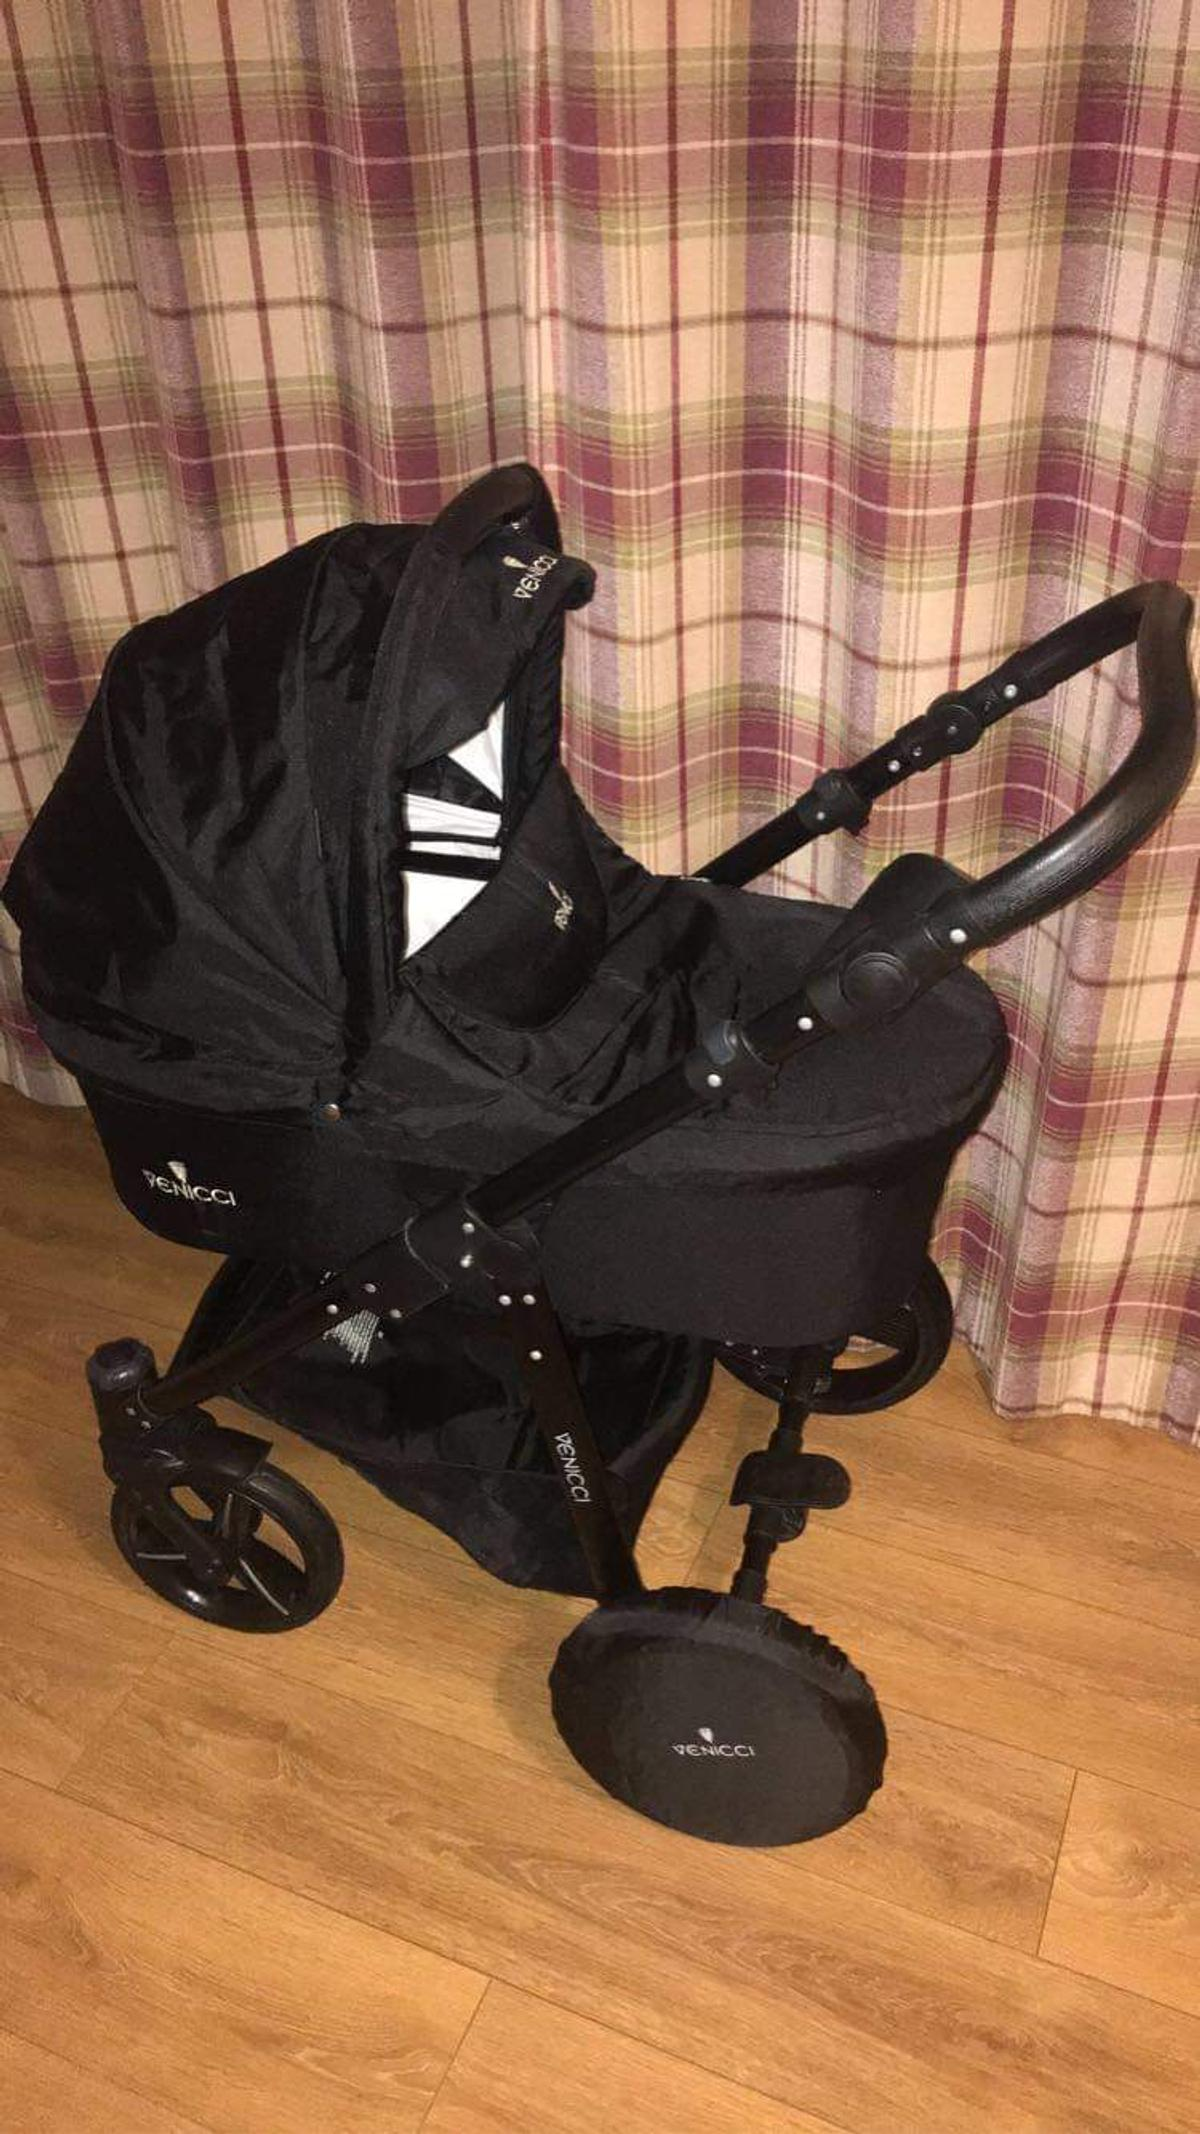 2 in 1 Black Venicci pram.. carrycot and pram seat.. Purchased for £550.00.. wheel covers, drinks holder and rain-cover included.. Excellent condition. Was used for 4 months - £120 o.n.o  Proof of purchase can be provided